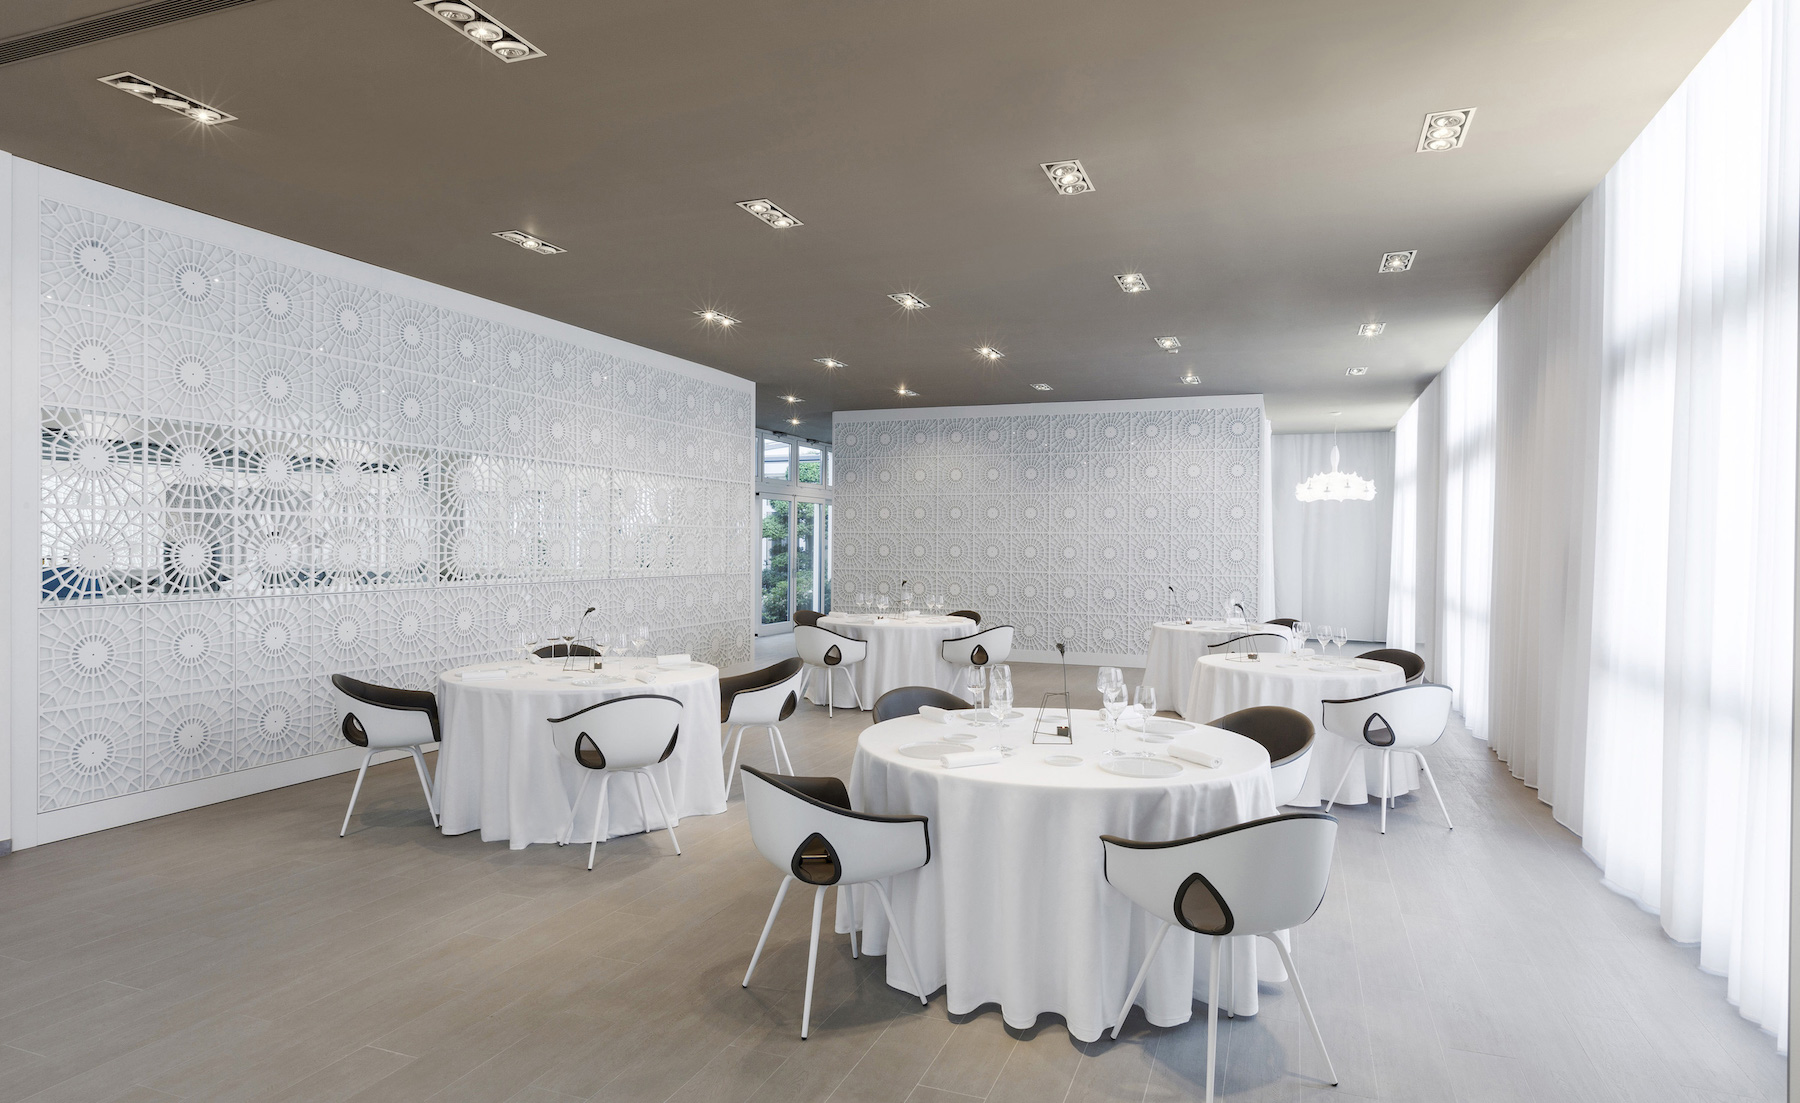 Lume restaurant review milan italy wallpaper